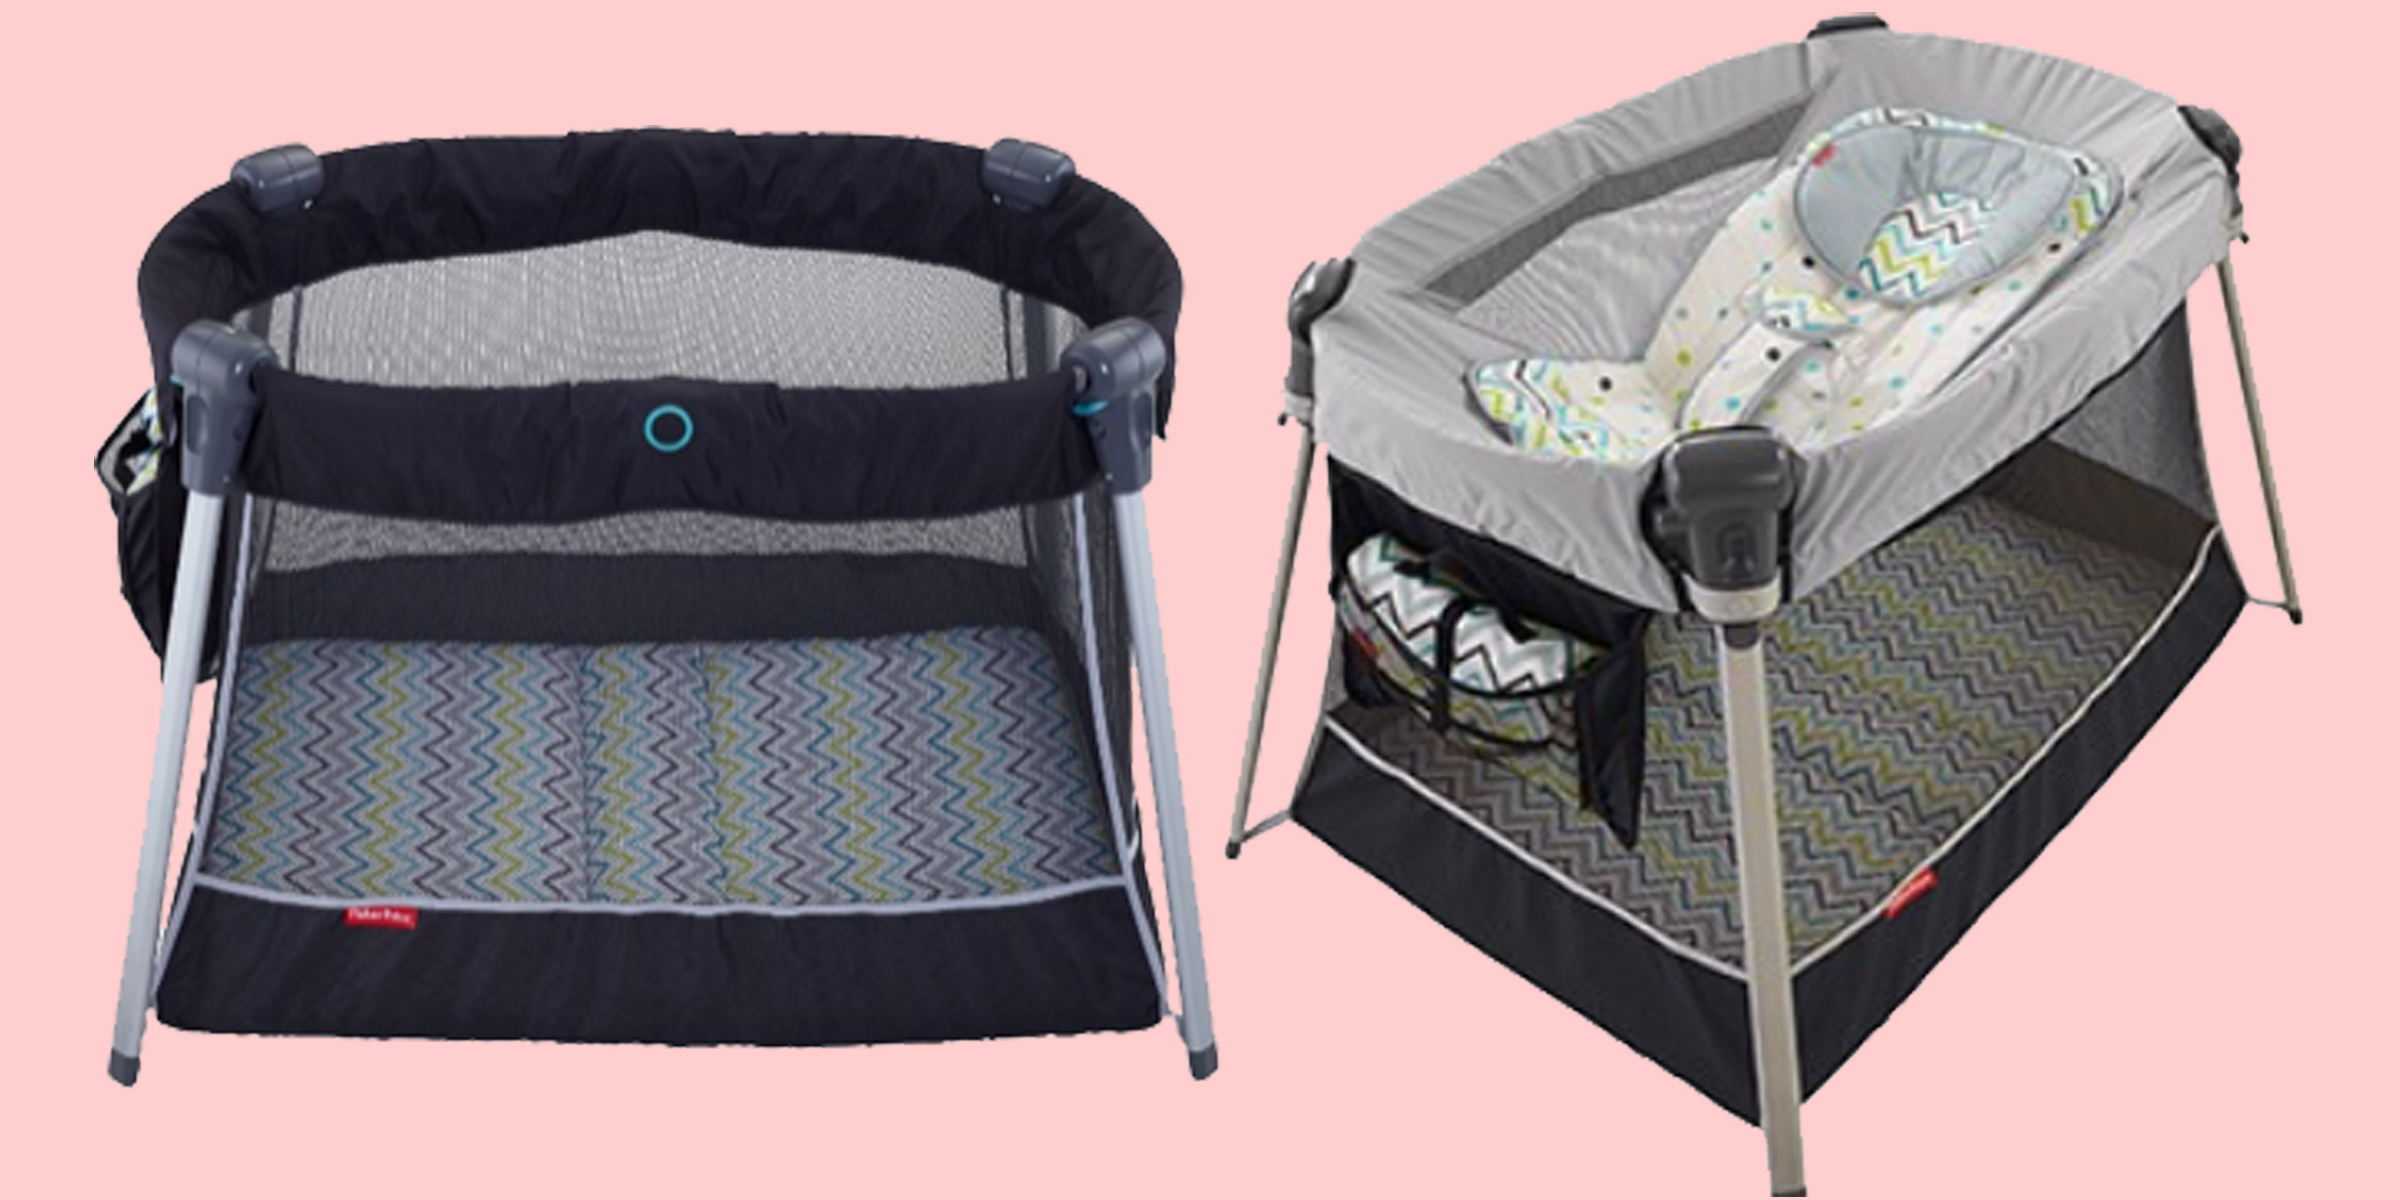 Fisher-Price recalling 71,000 inclined sleeper accessories